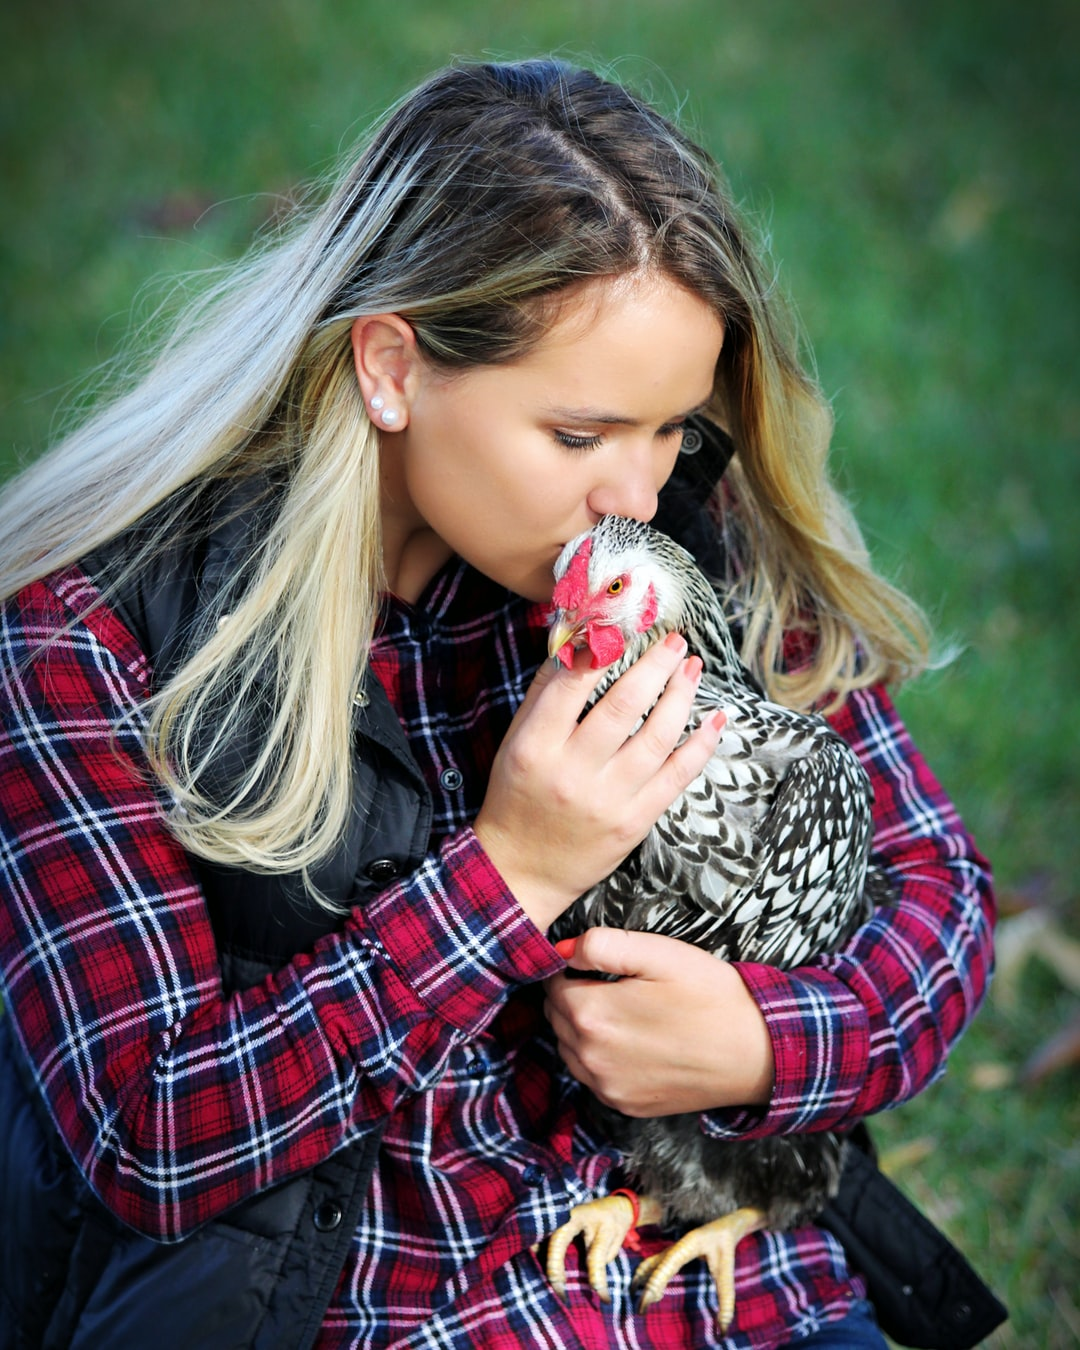 A girl kisses a chicken in the grass wearing a flannel shirt.